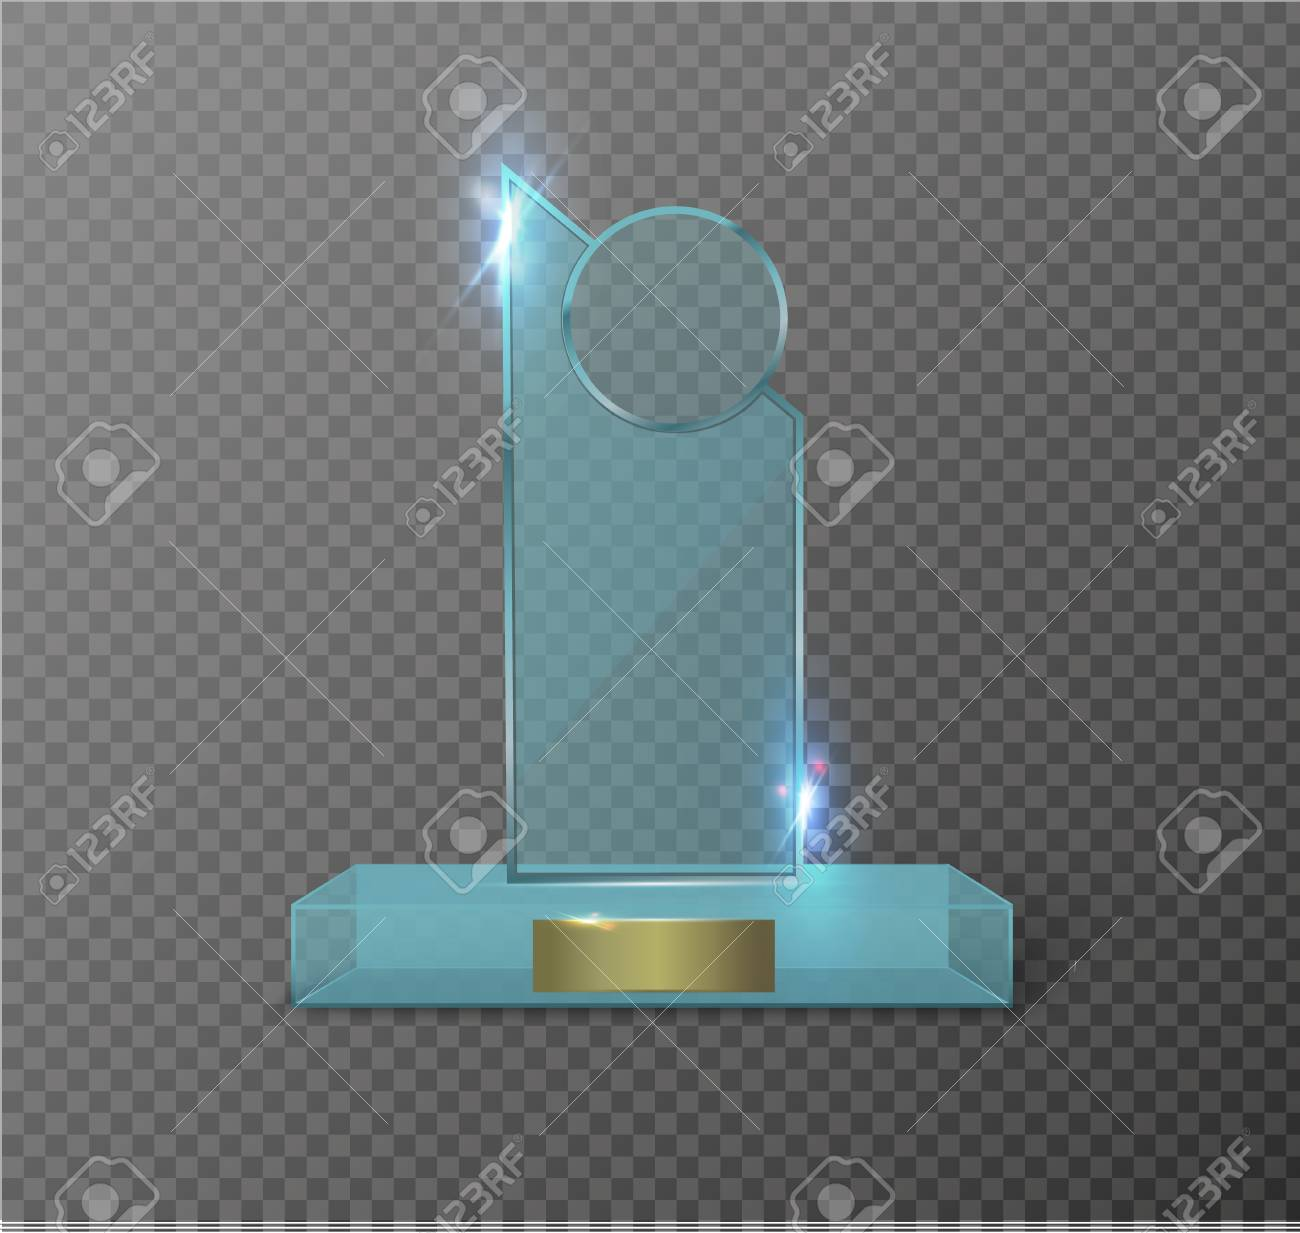 Blank glass trophy award on a transparent background